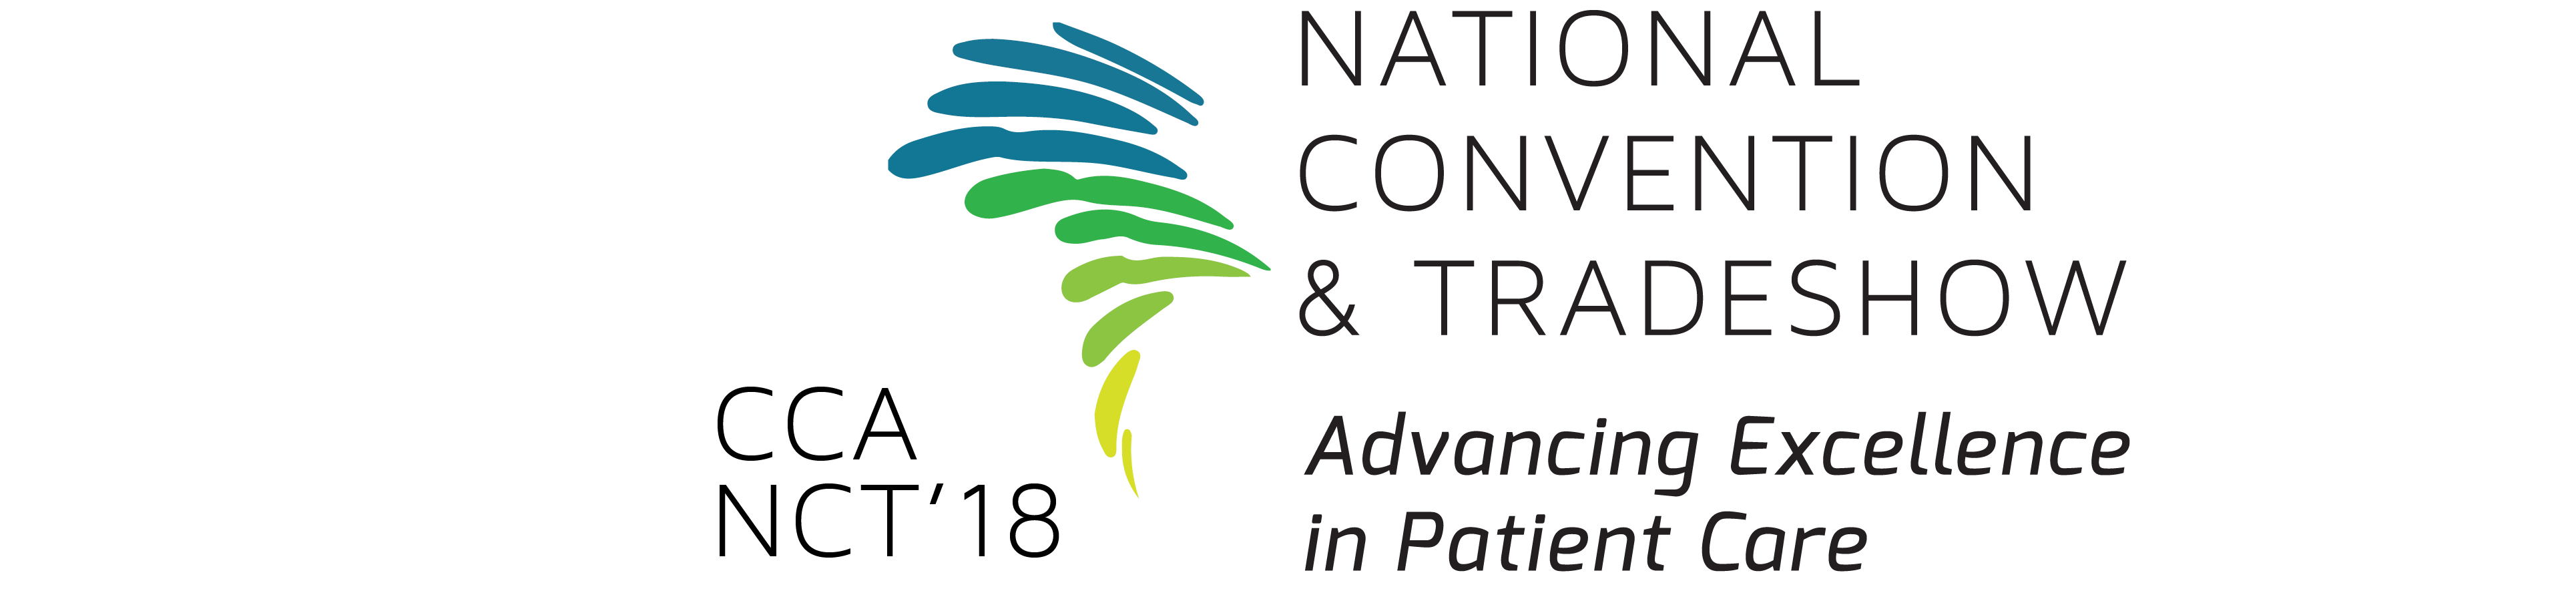 Canadian Chiropractic Association National Convention and Tradeshow